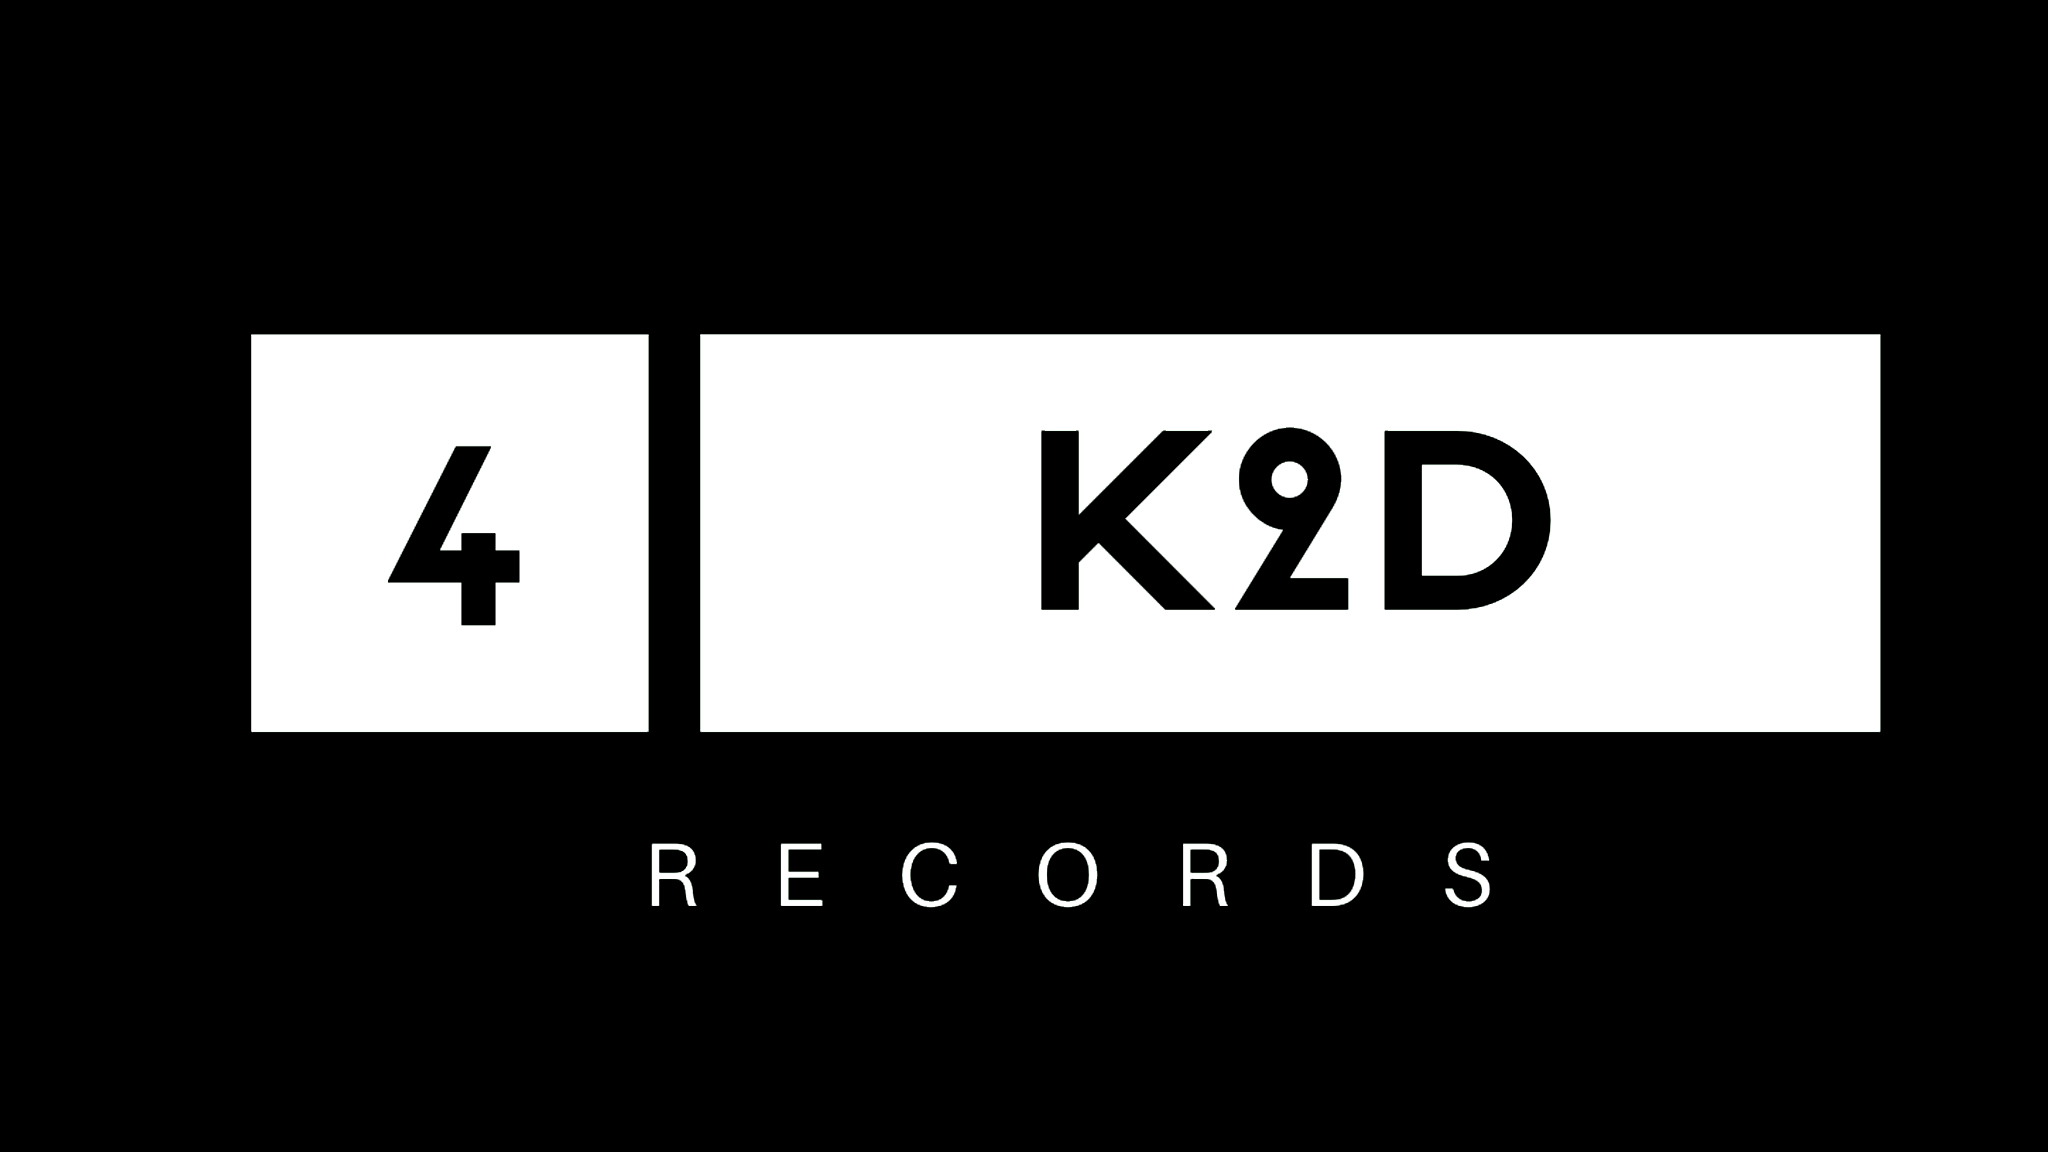 4K2D records elise ms williams logo musi